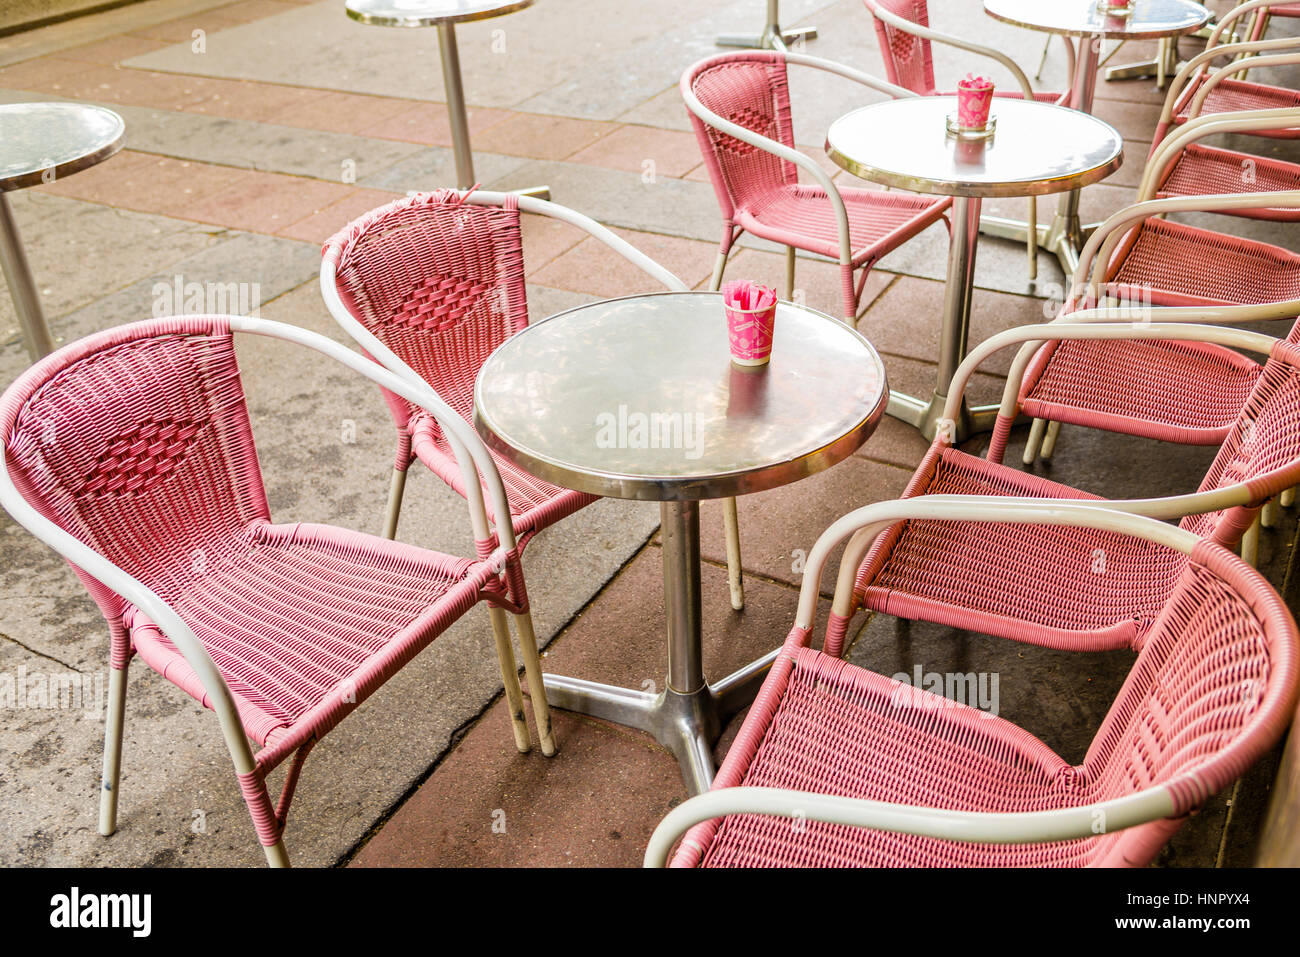 Pink Plastic Wicker Chairs And Round Silver Tables With Pink Cups  Containing Sugar Outside A Bistro.